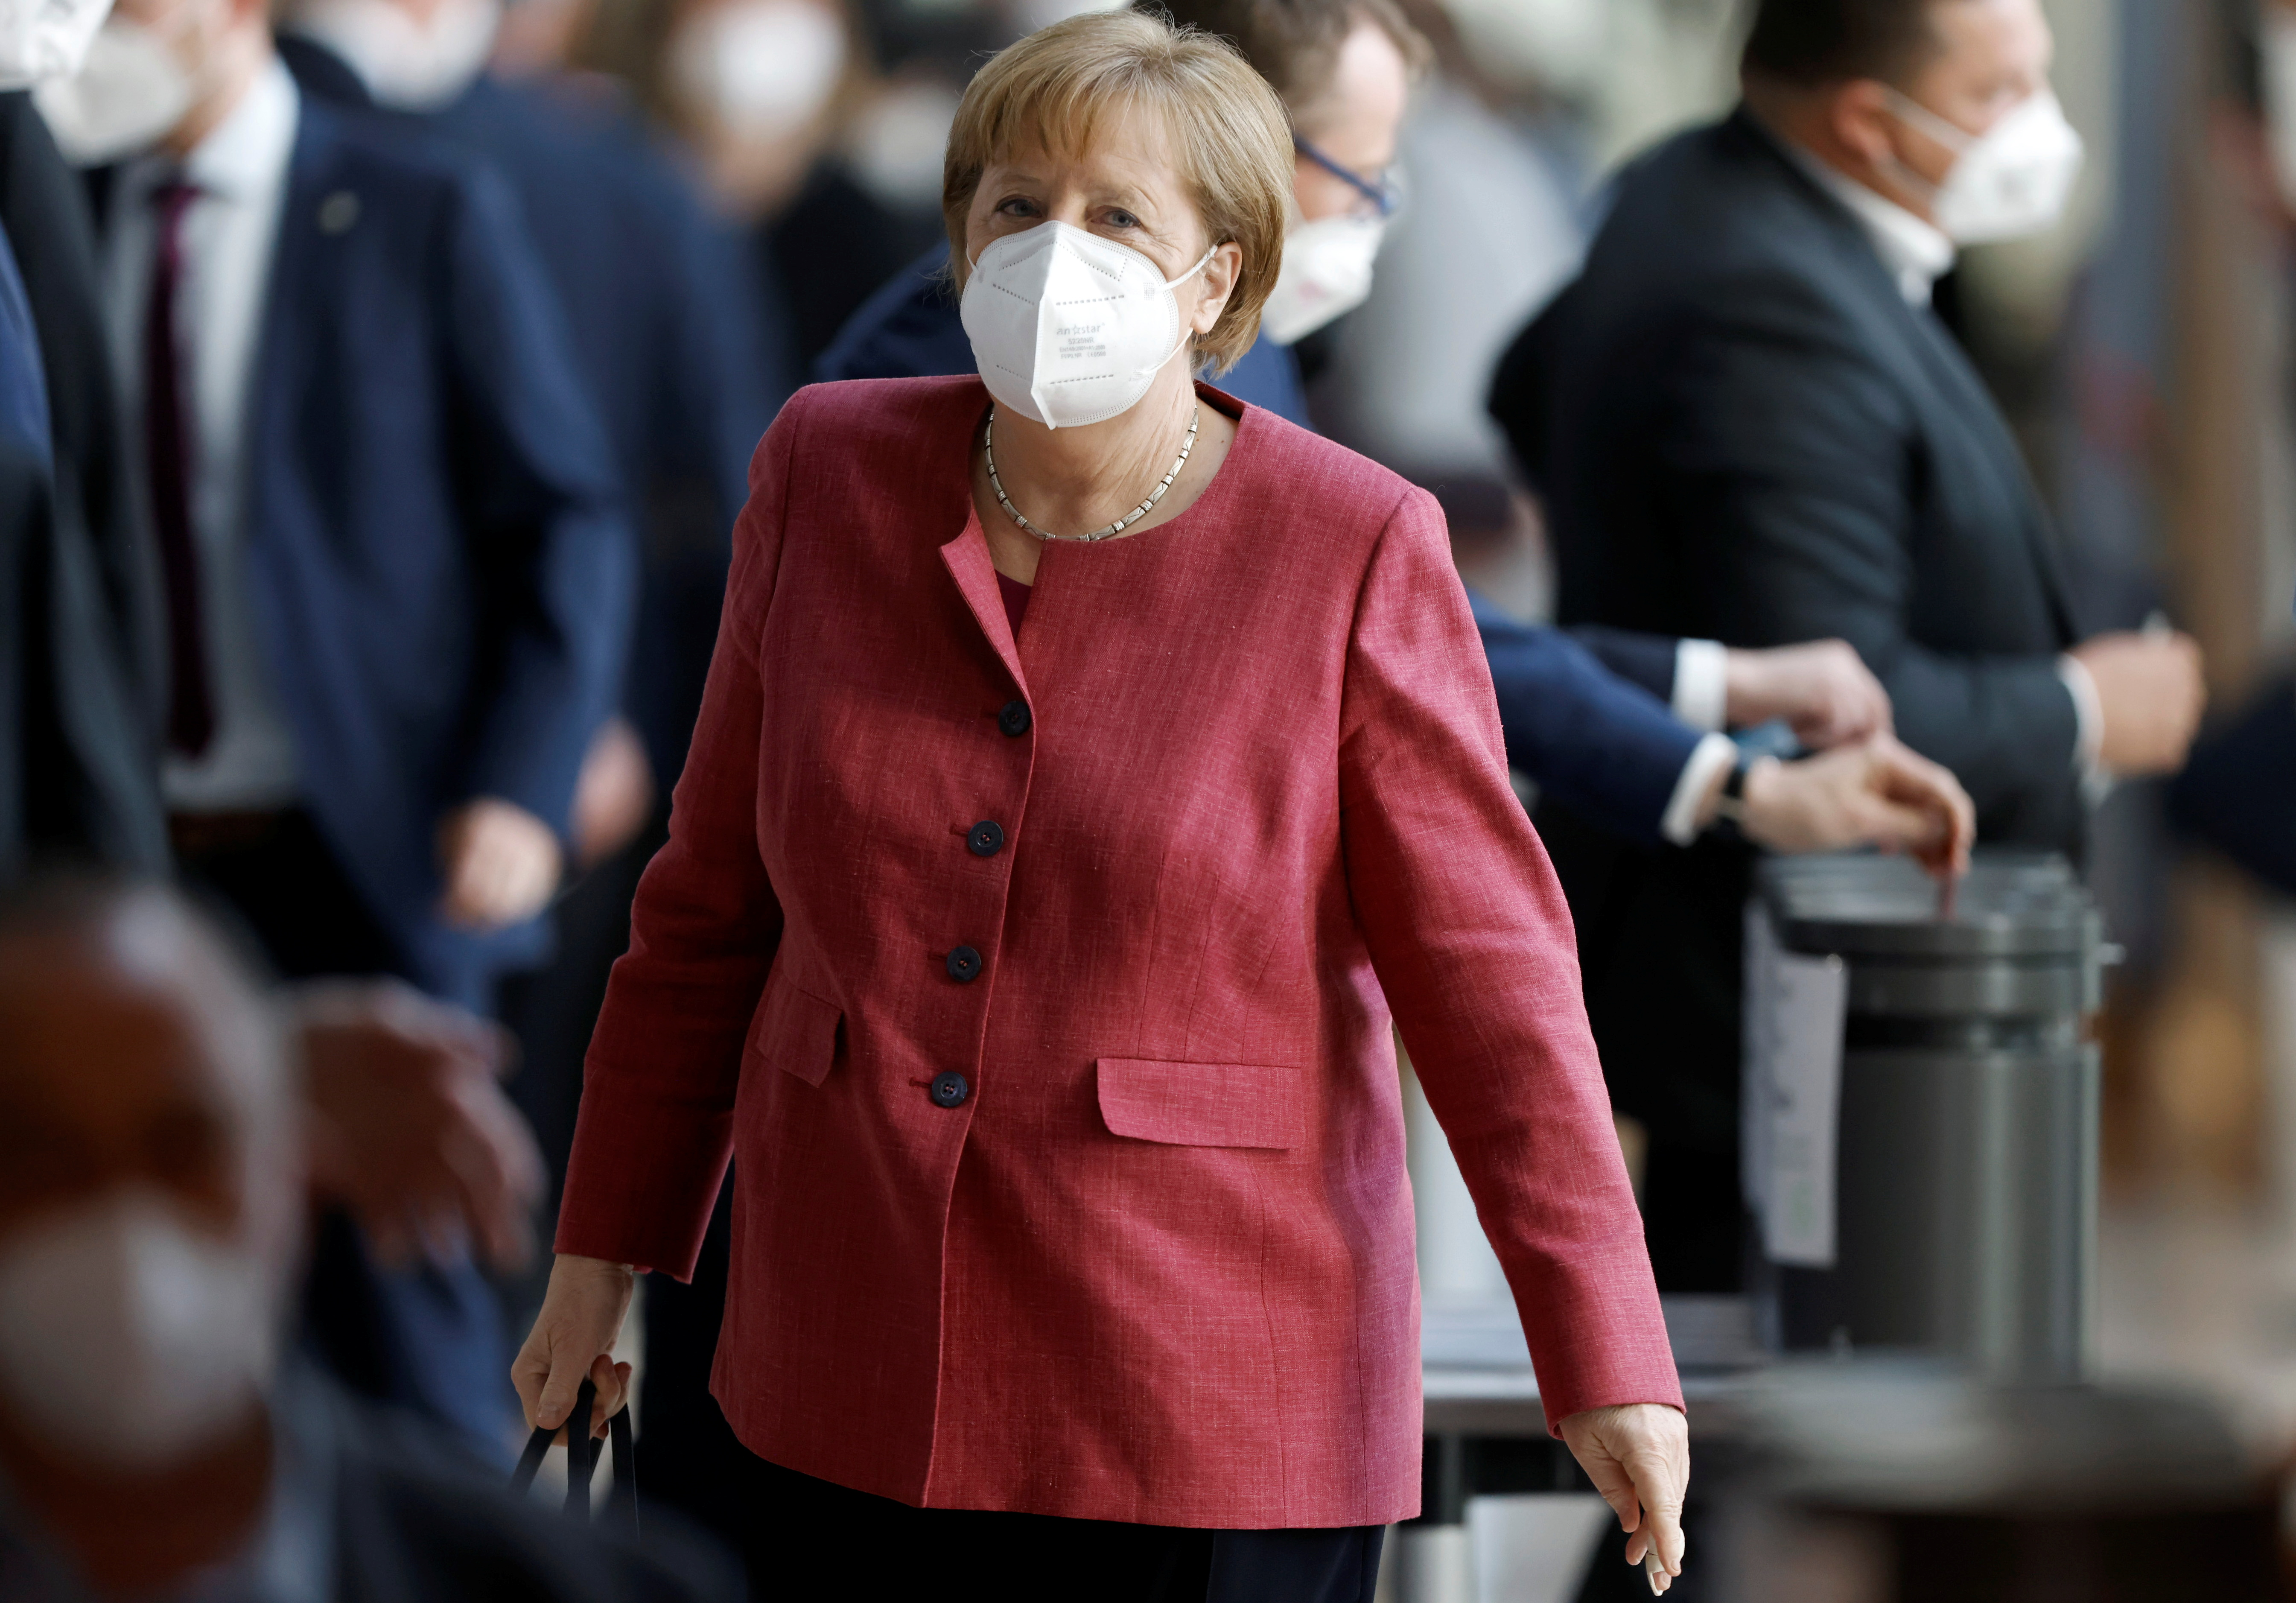 German Chancellor Angela Merkel leaves after voting for COVID-19 regulations following a debate about the Infection Protection Act in the lower house of parliament Bundestag in Berlin, Germany April 21, 2021.    REUTERS/Axel Schmidt